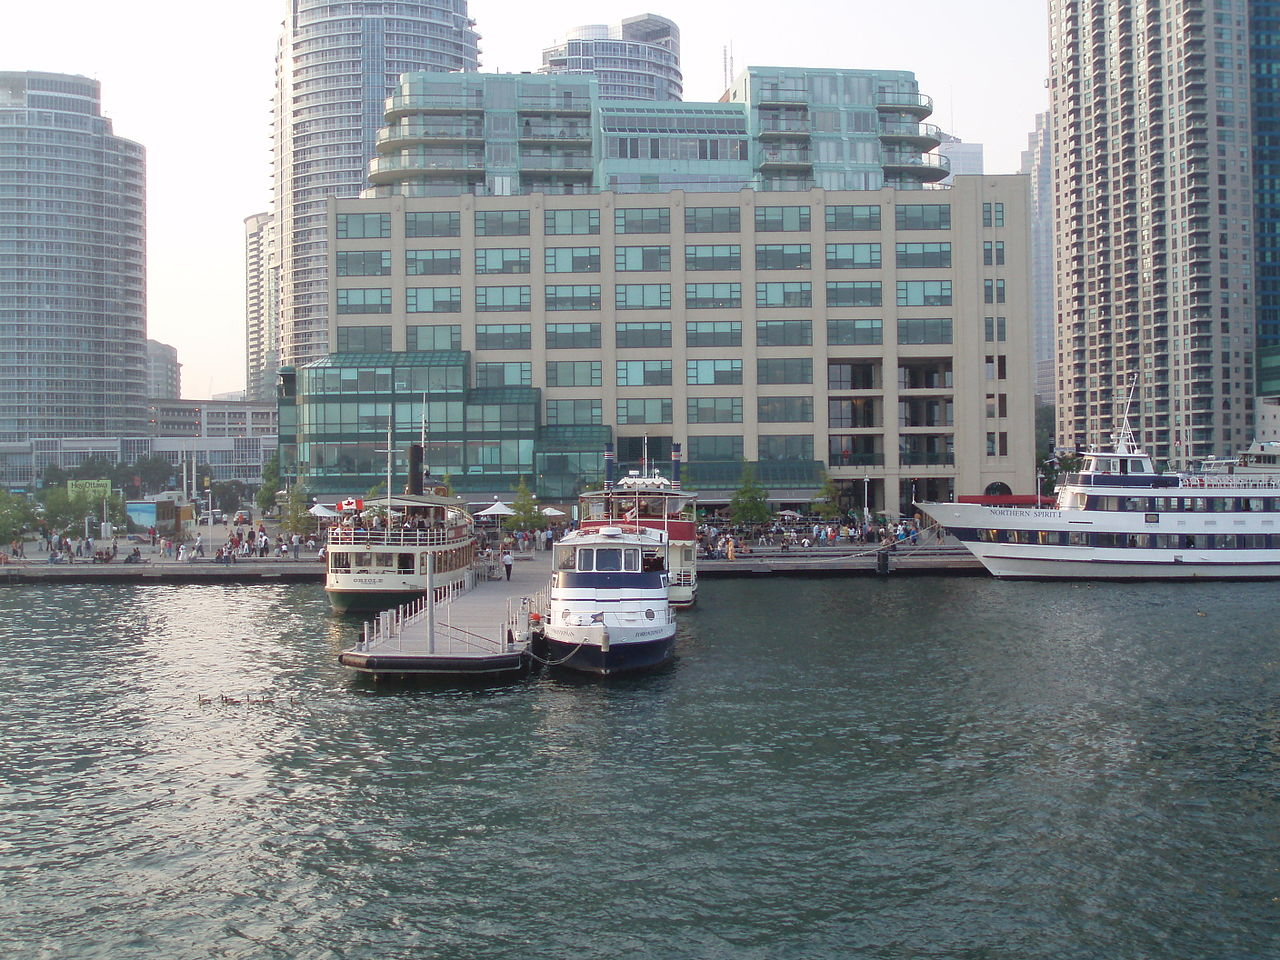 Another image of Toronto Harbour, this one showing ferries and people on the boardwalk.